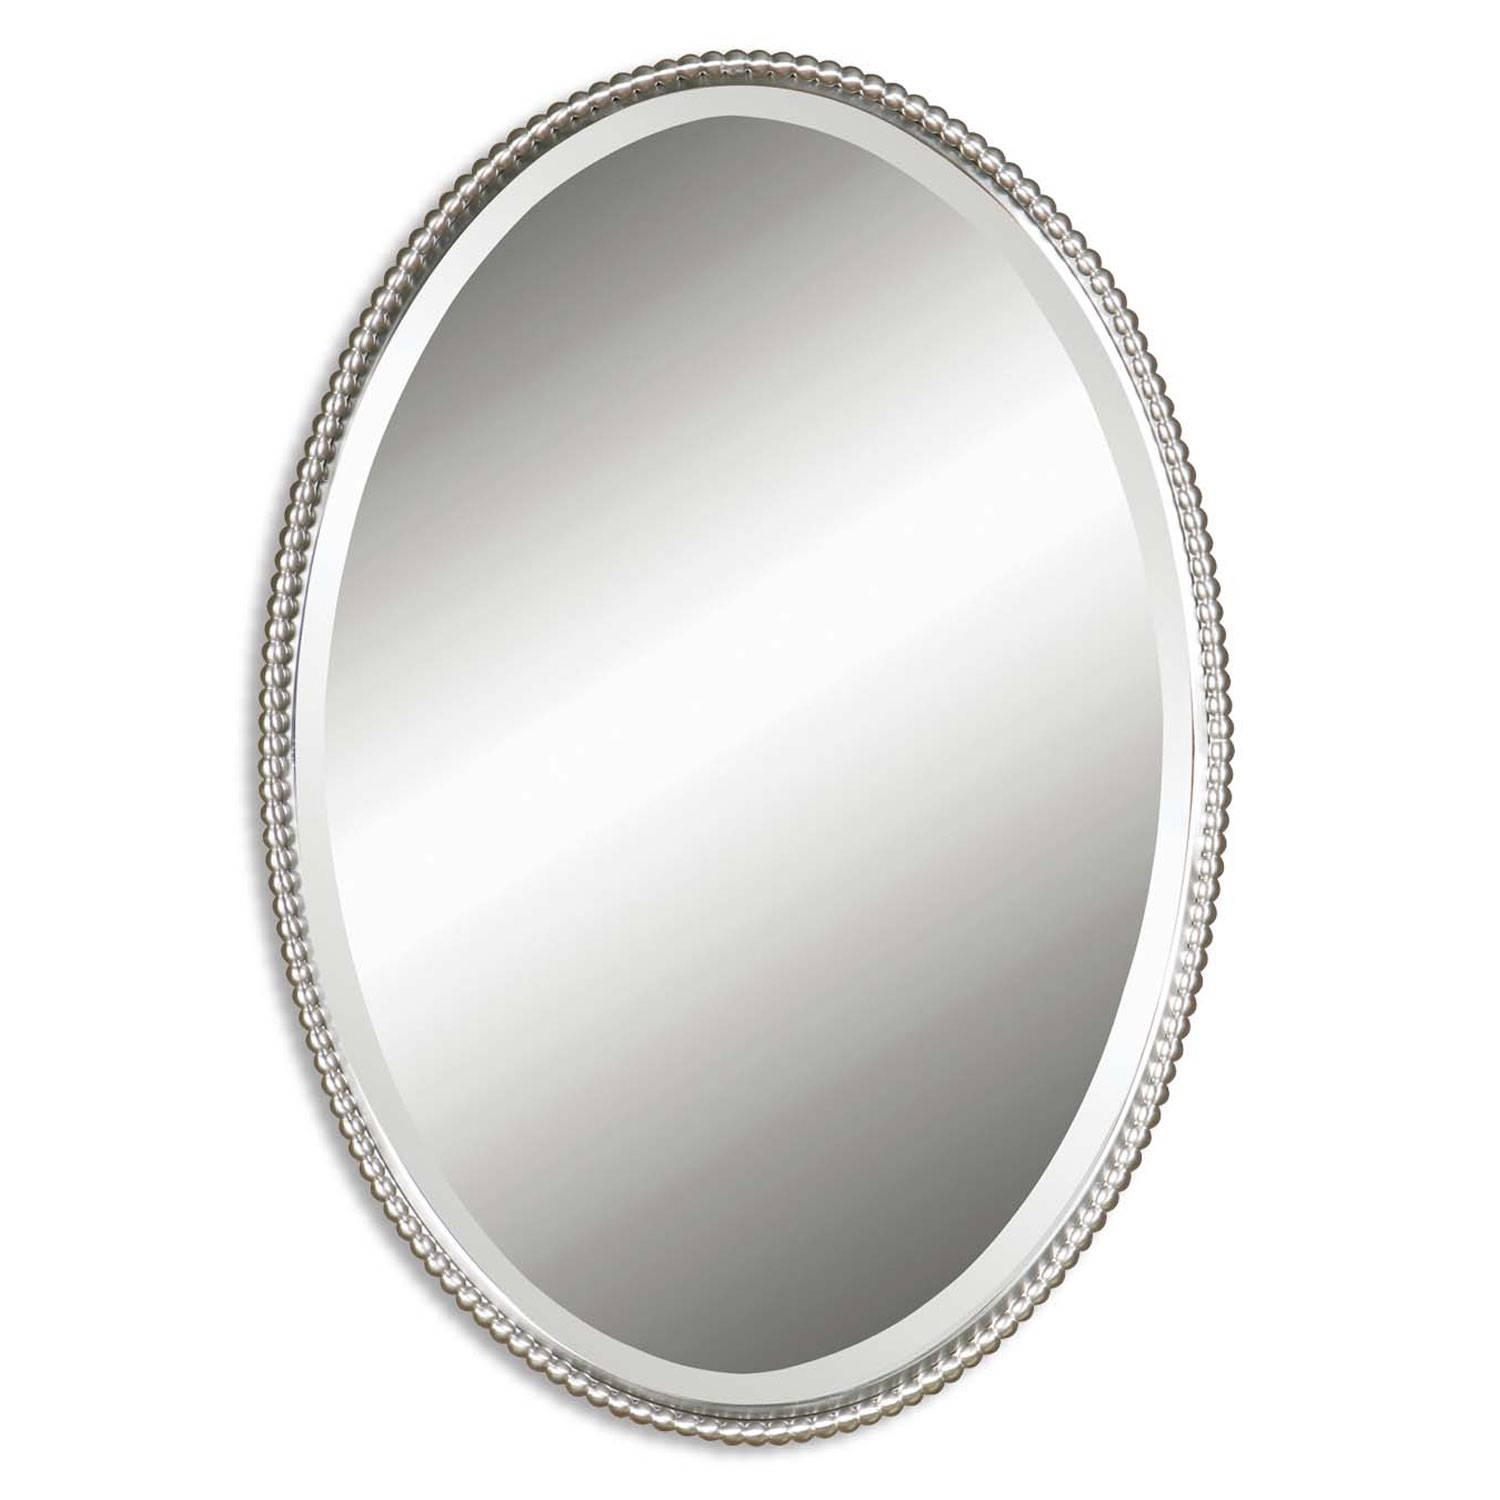 Sherise Brushed Nickel Oval Mirror Uttermost Wall Mirror Mirrors For Oval Mirrors For Walls (View 8 of 25)